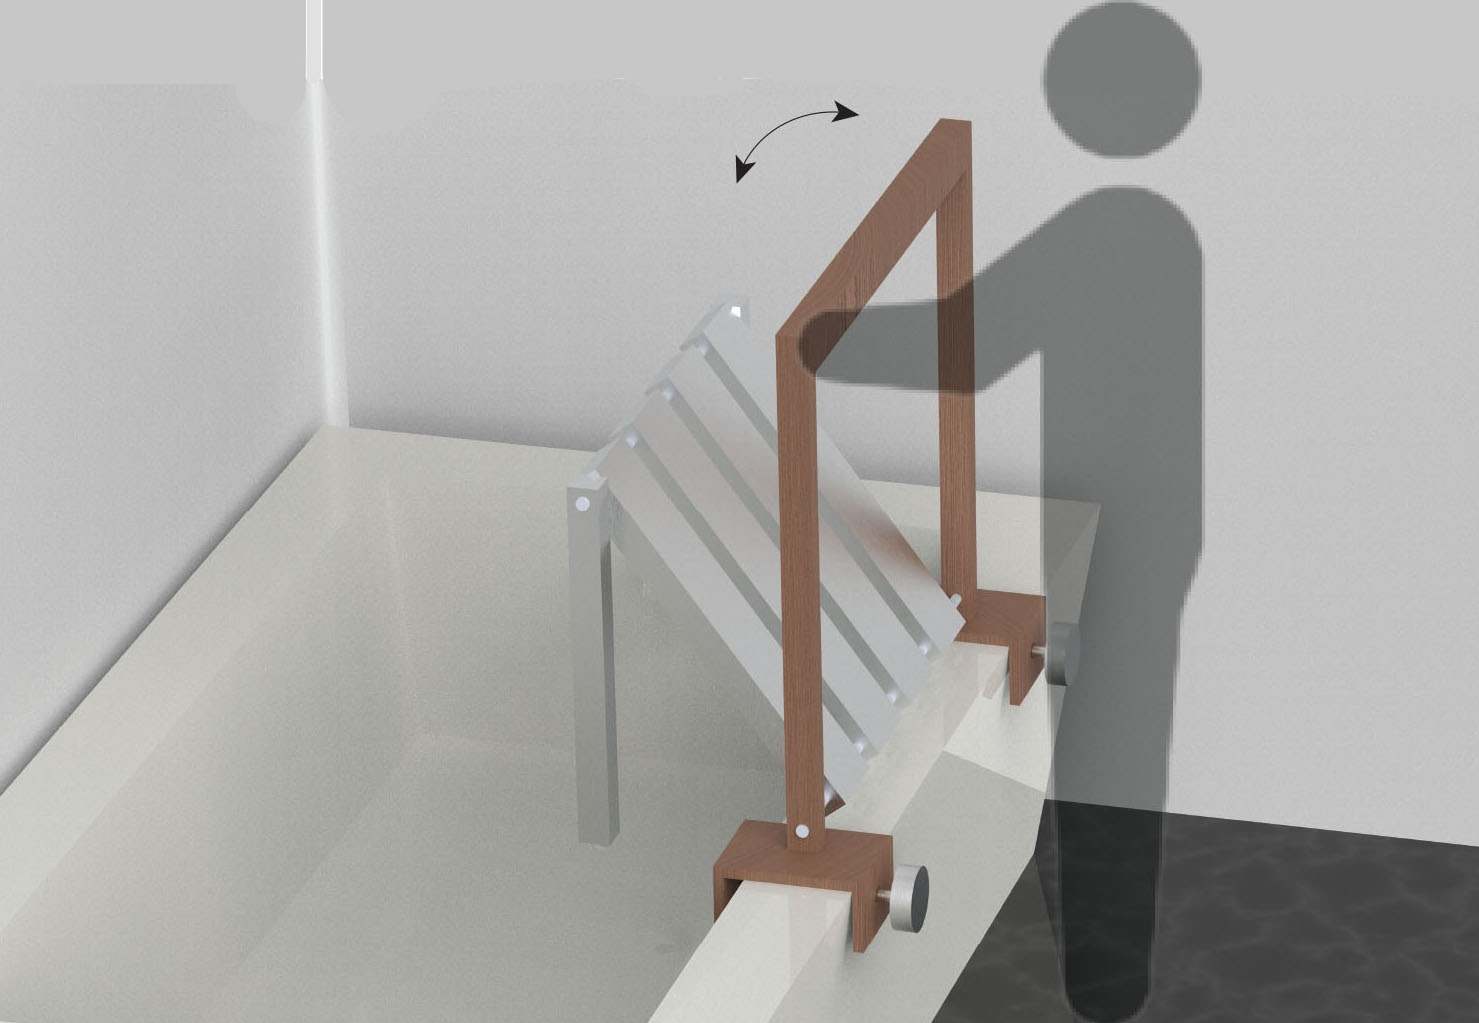 Figure 6. An honorable mention was awarded for the Showfold, an assistive shower seat device.